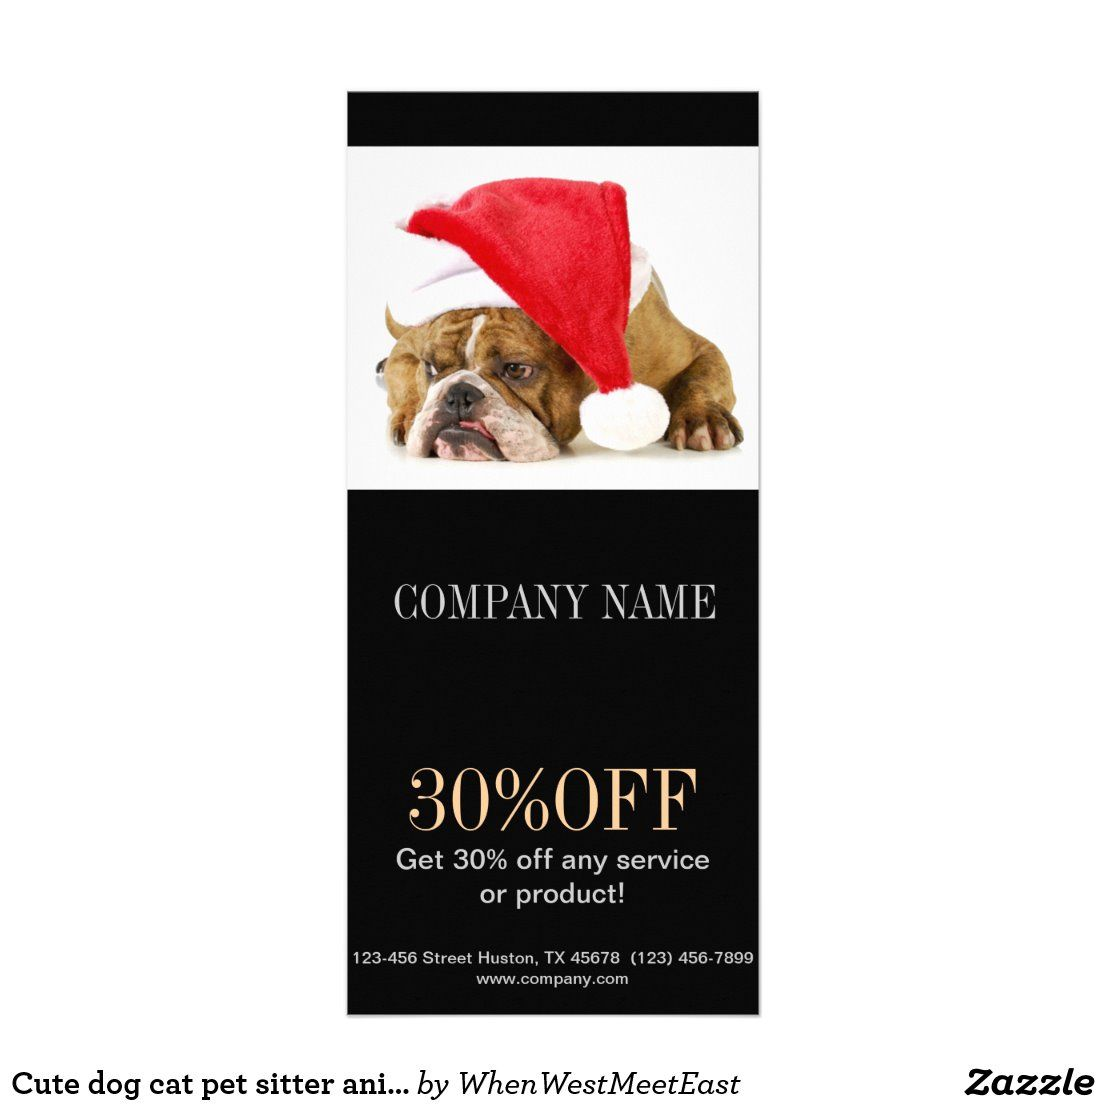 Cute Dog Cat Pet Sitter Animal Sitter Pet Groomer Rack Card Zazzle Com In 2020 Pet Sitters Pet Groomers Cute Dogs